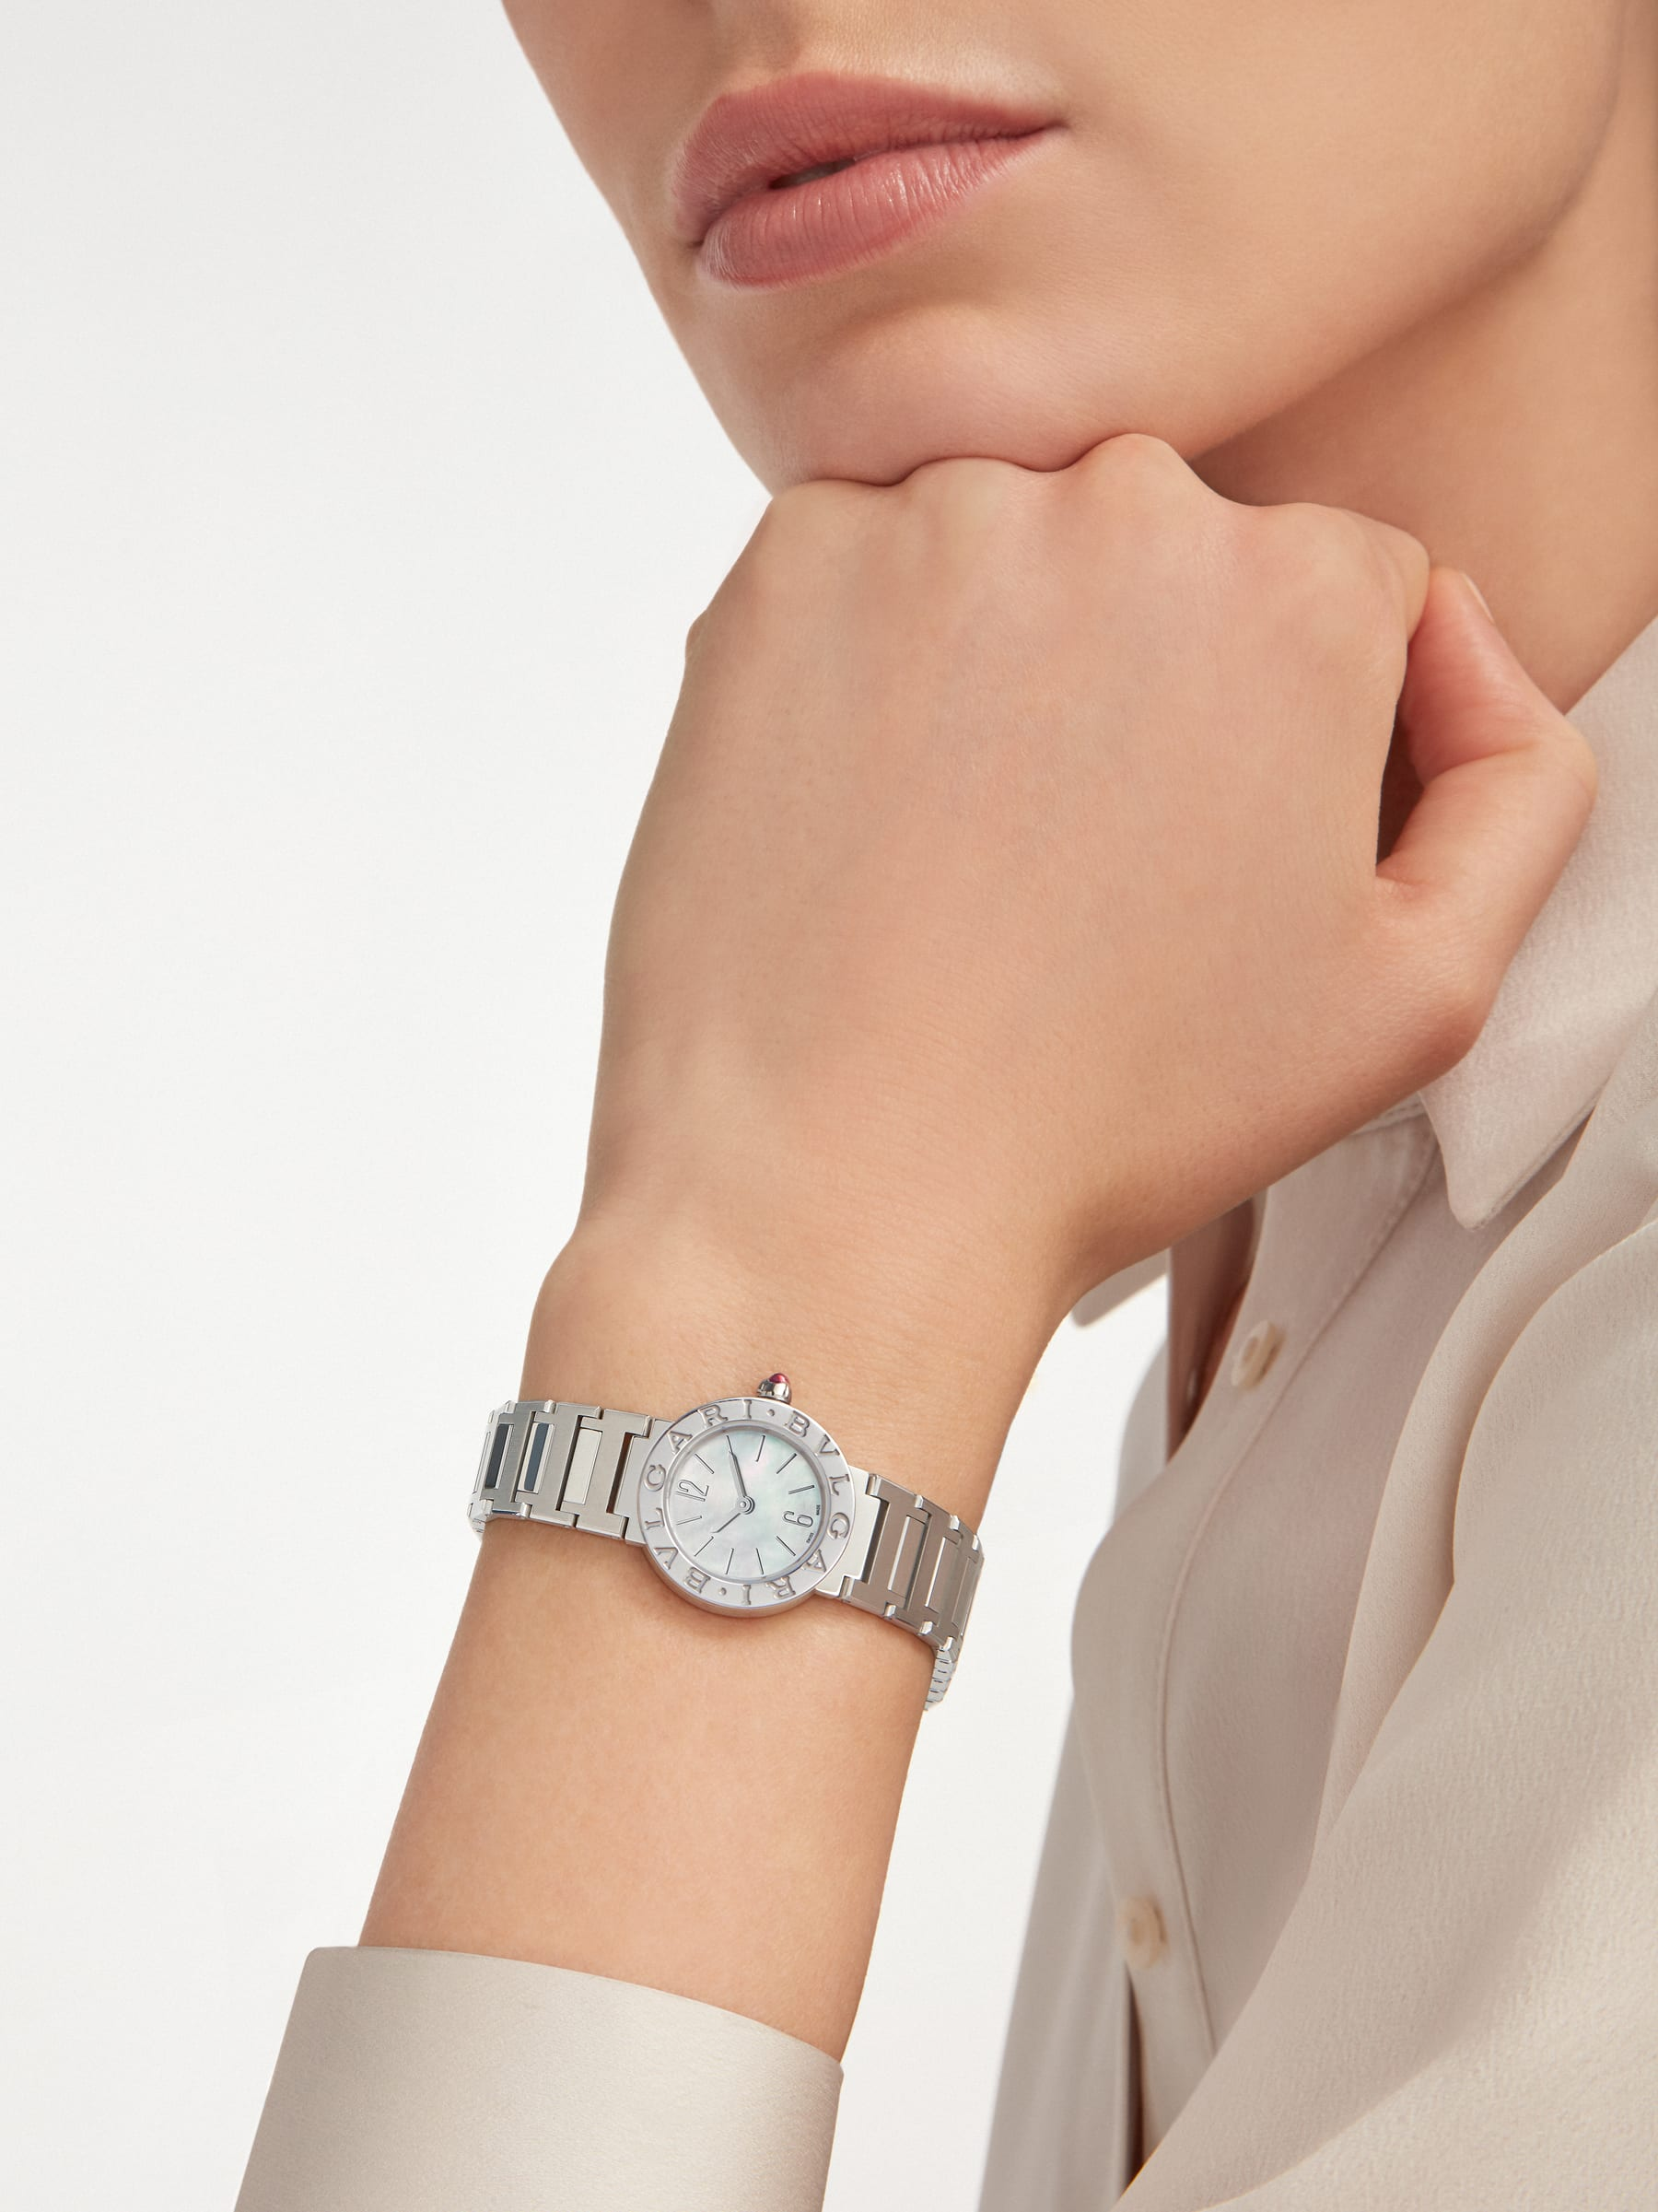 BVLGARI BVLGARI watch in stainless steel case and bracelet, stainless steel bezel engraved with double logo and mother-of-pearl dial 103217 image 5